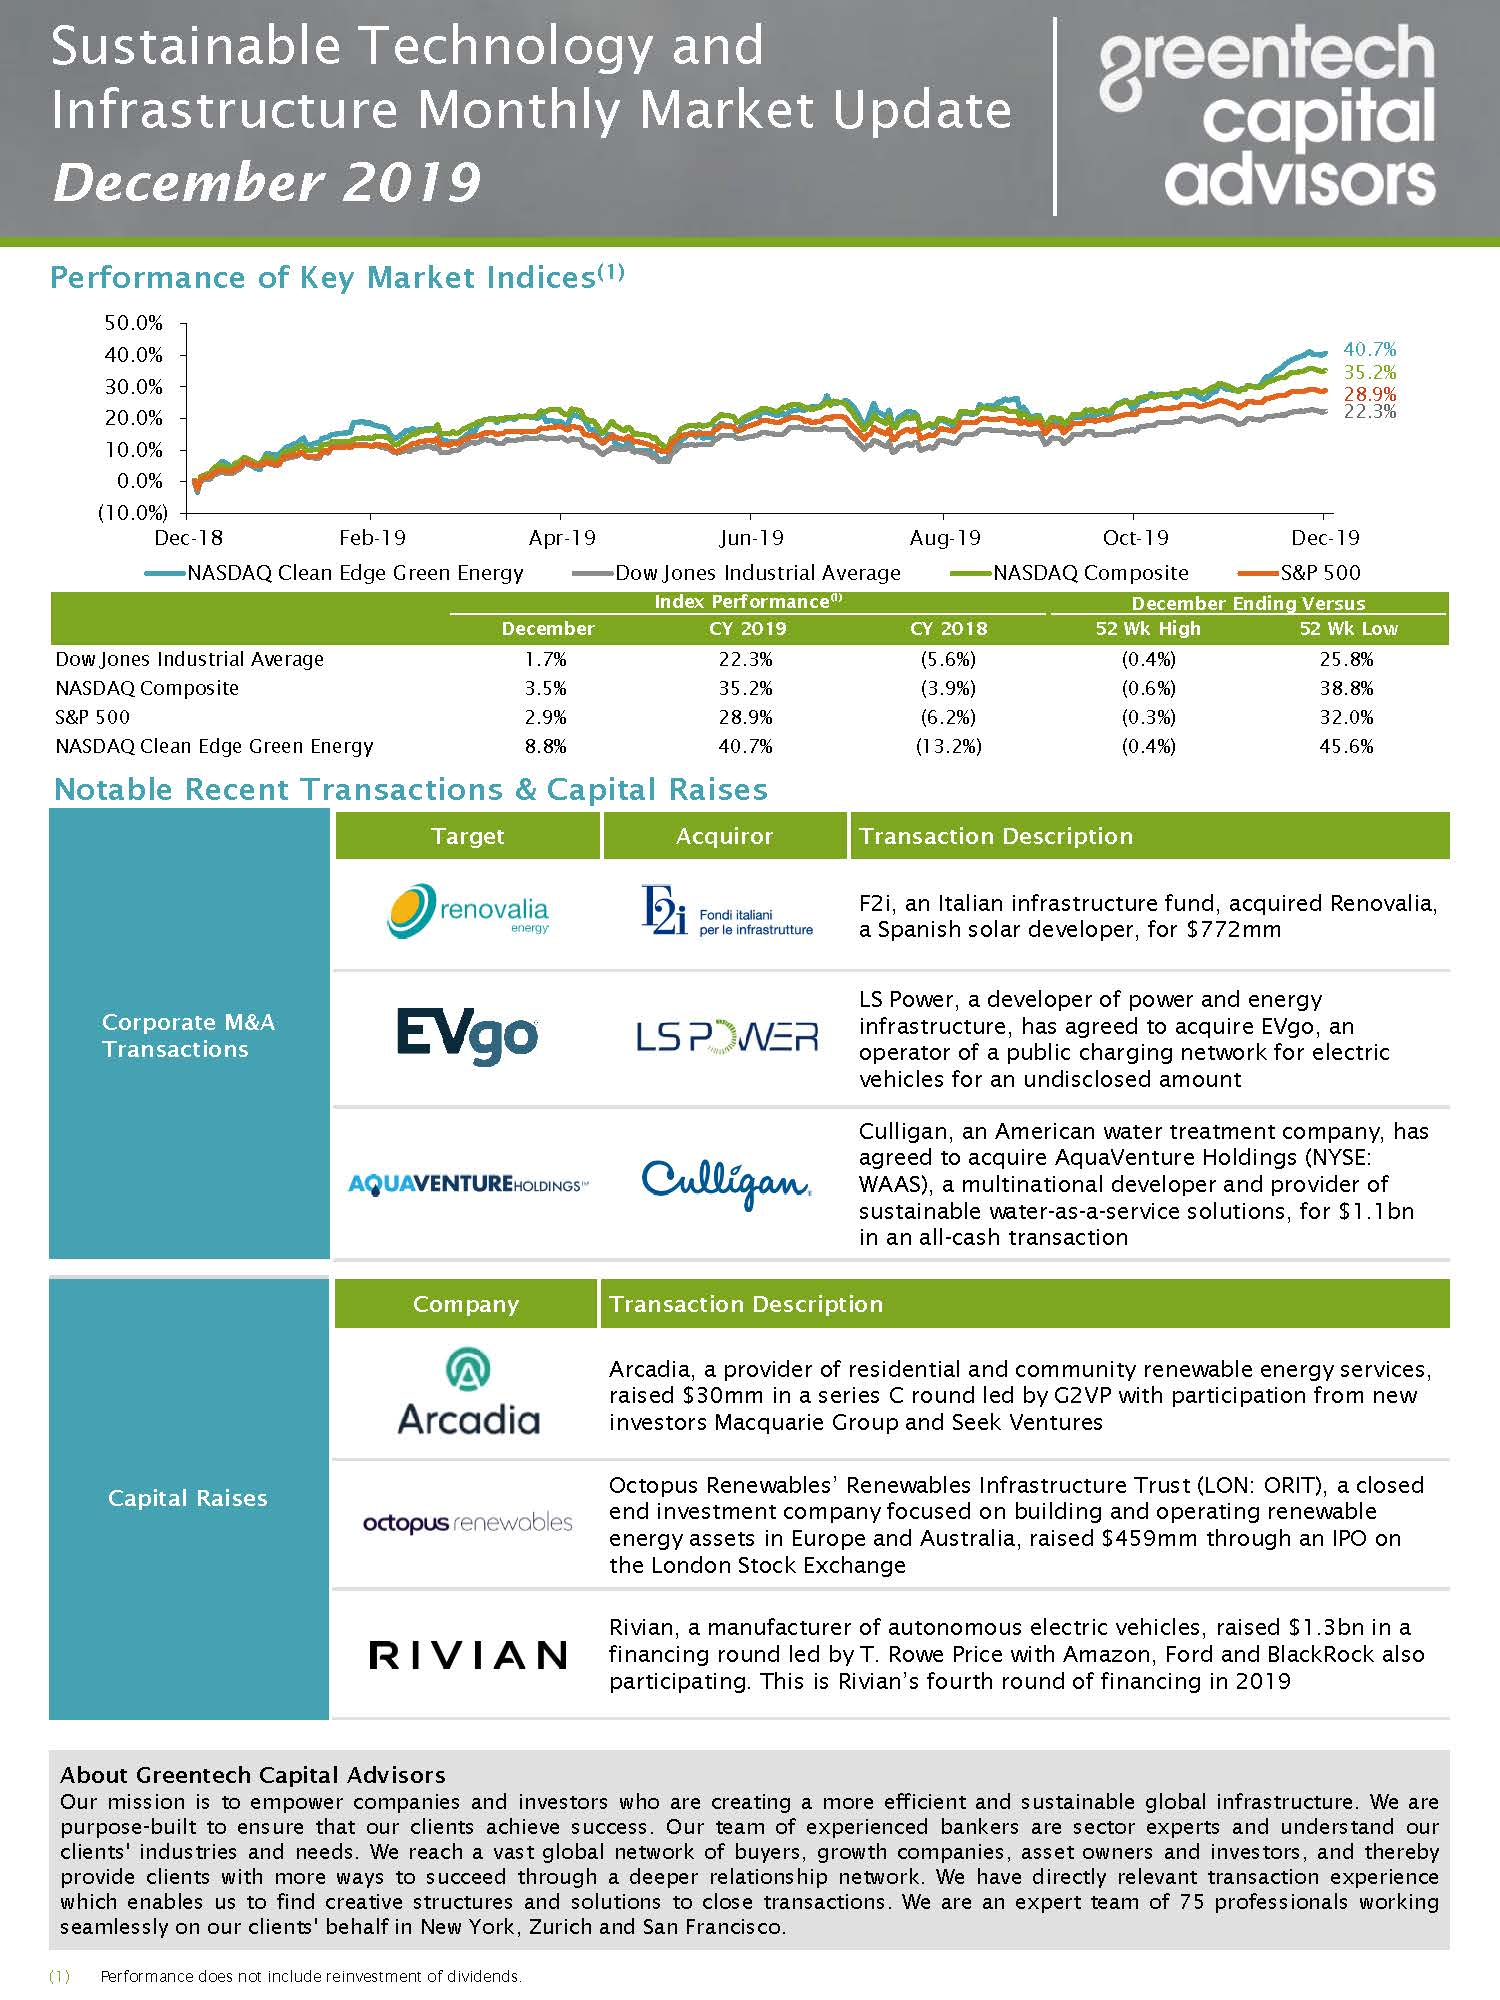 Sustainable Investing Monthly Market Update - December 2019